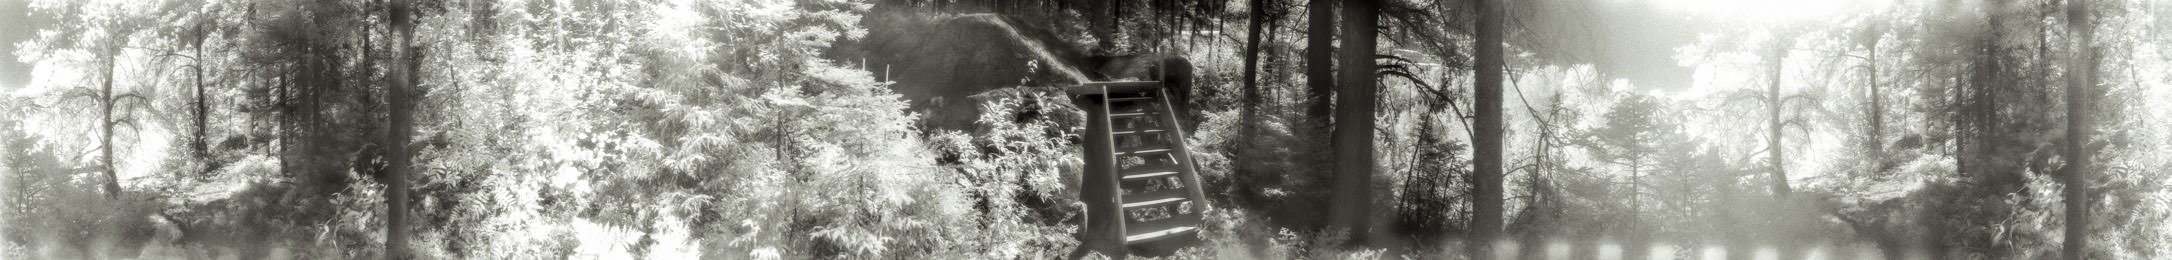 """""""Staircase"""" from the series Footprints, by William Mokrynski"""